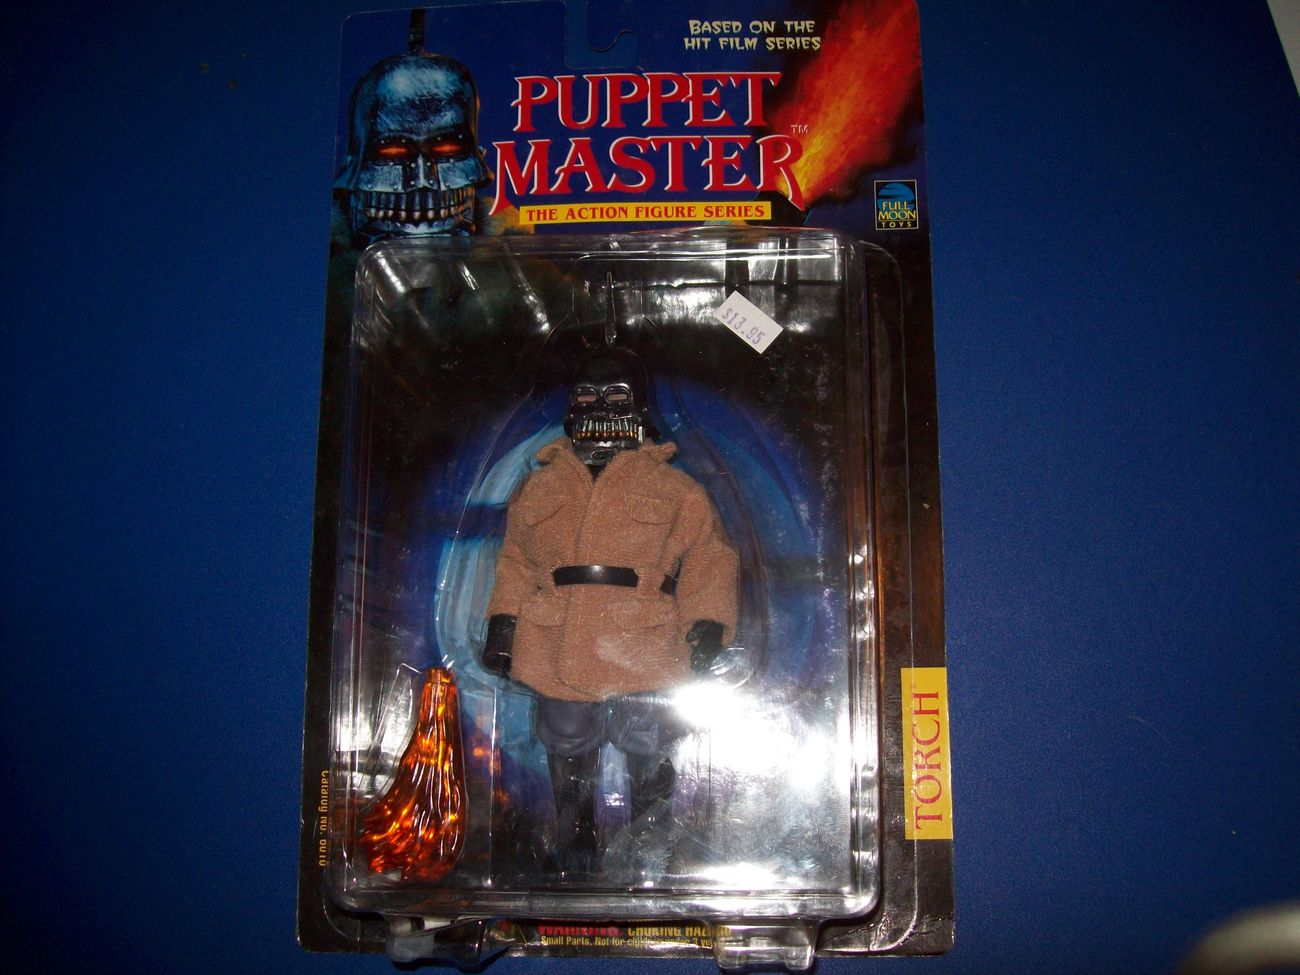 FREE SHIP torch puppet master figure new in box full moon toys open to offers